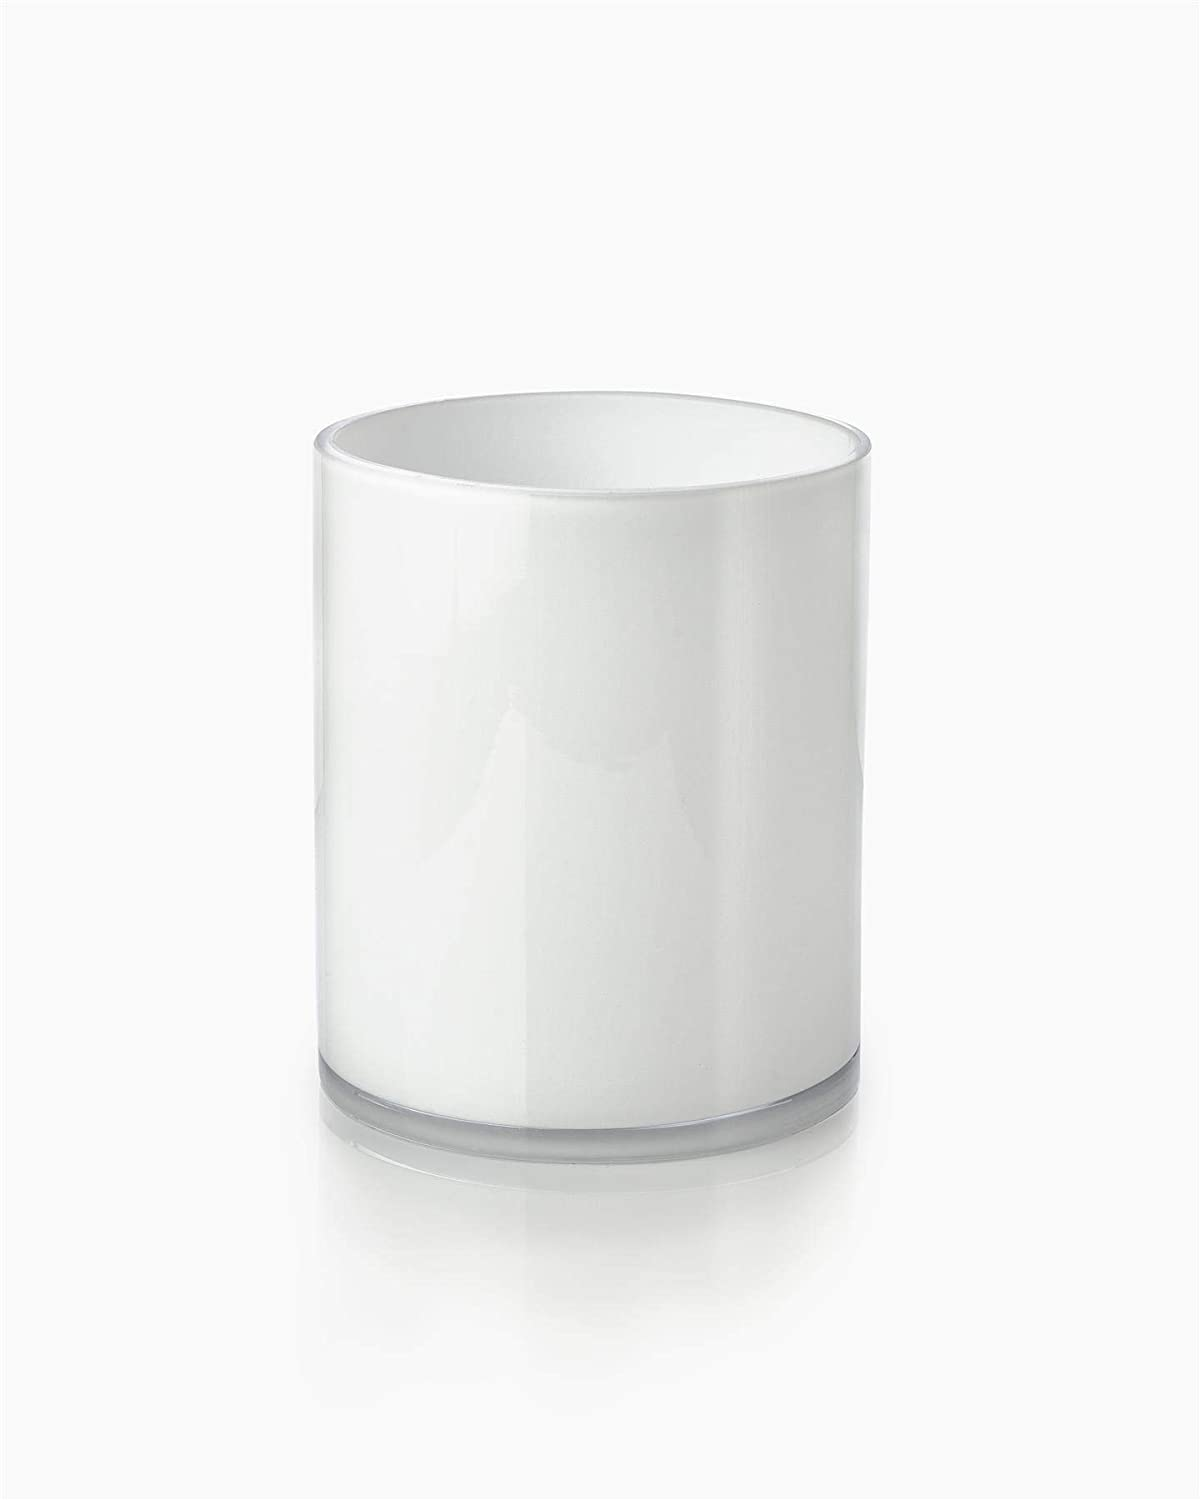 "Serene Spaces Living White Glass Cylinder Vase – Smart Modern White Design, Décor Accent, Use for Weddings, Parties, Events, Home Decor, 6"" Tall by 5"" Diameter"